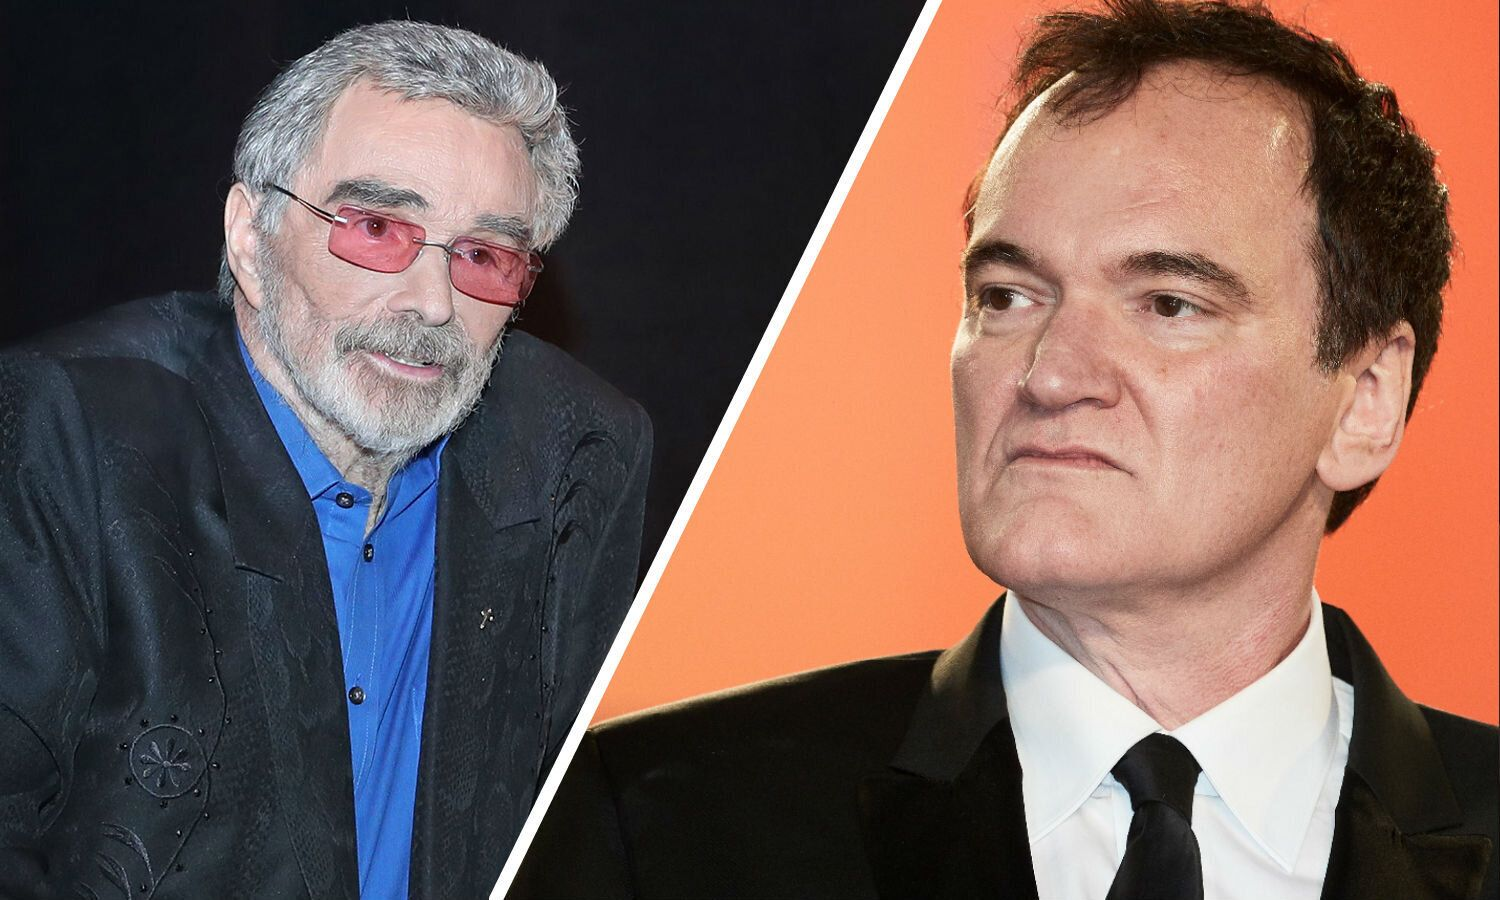 Burt Reynolds was reading lines for 'Once Upon a Time in Hollywood' when he died, says Quentin Tarantino (Credit: Getty)